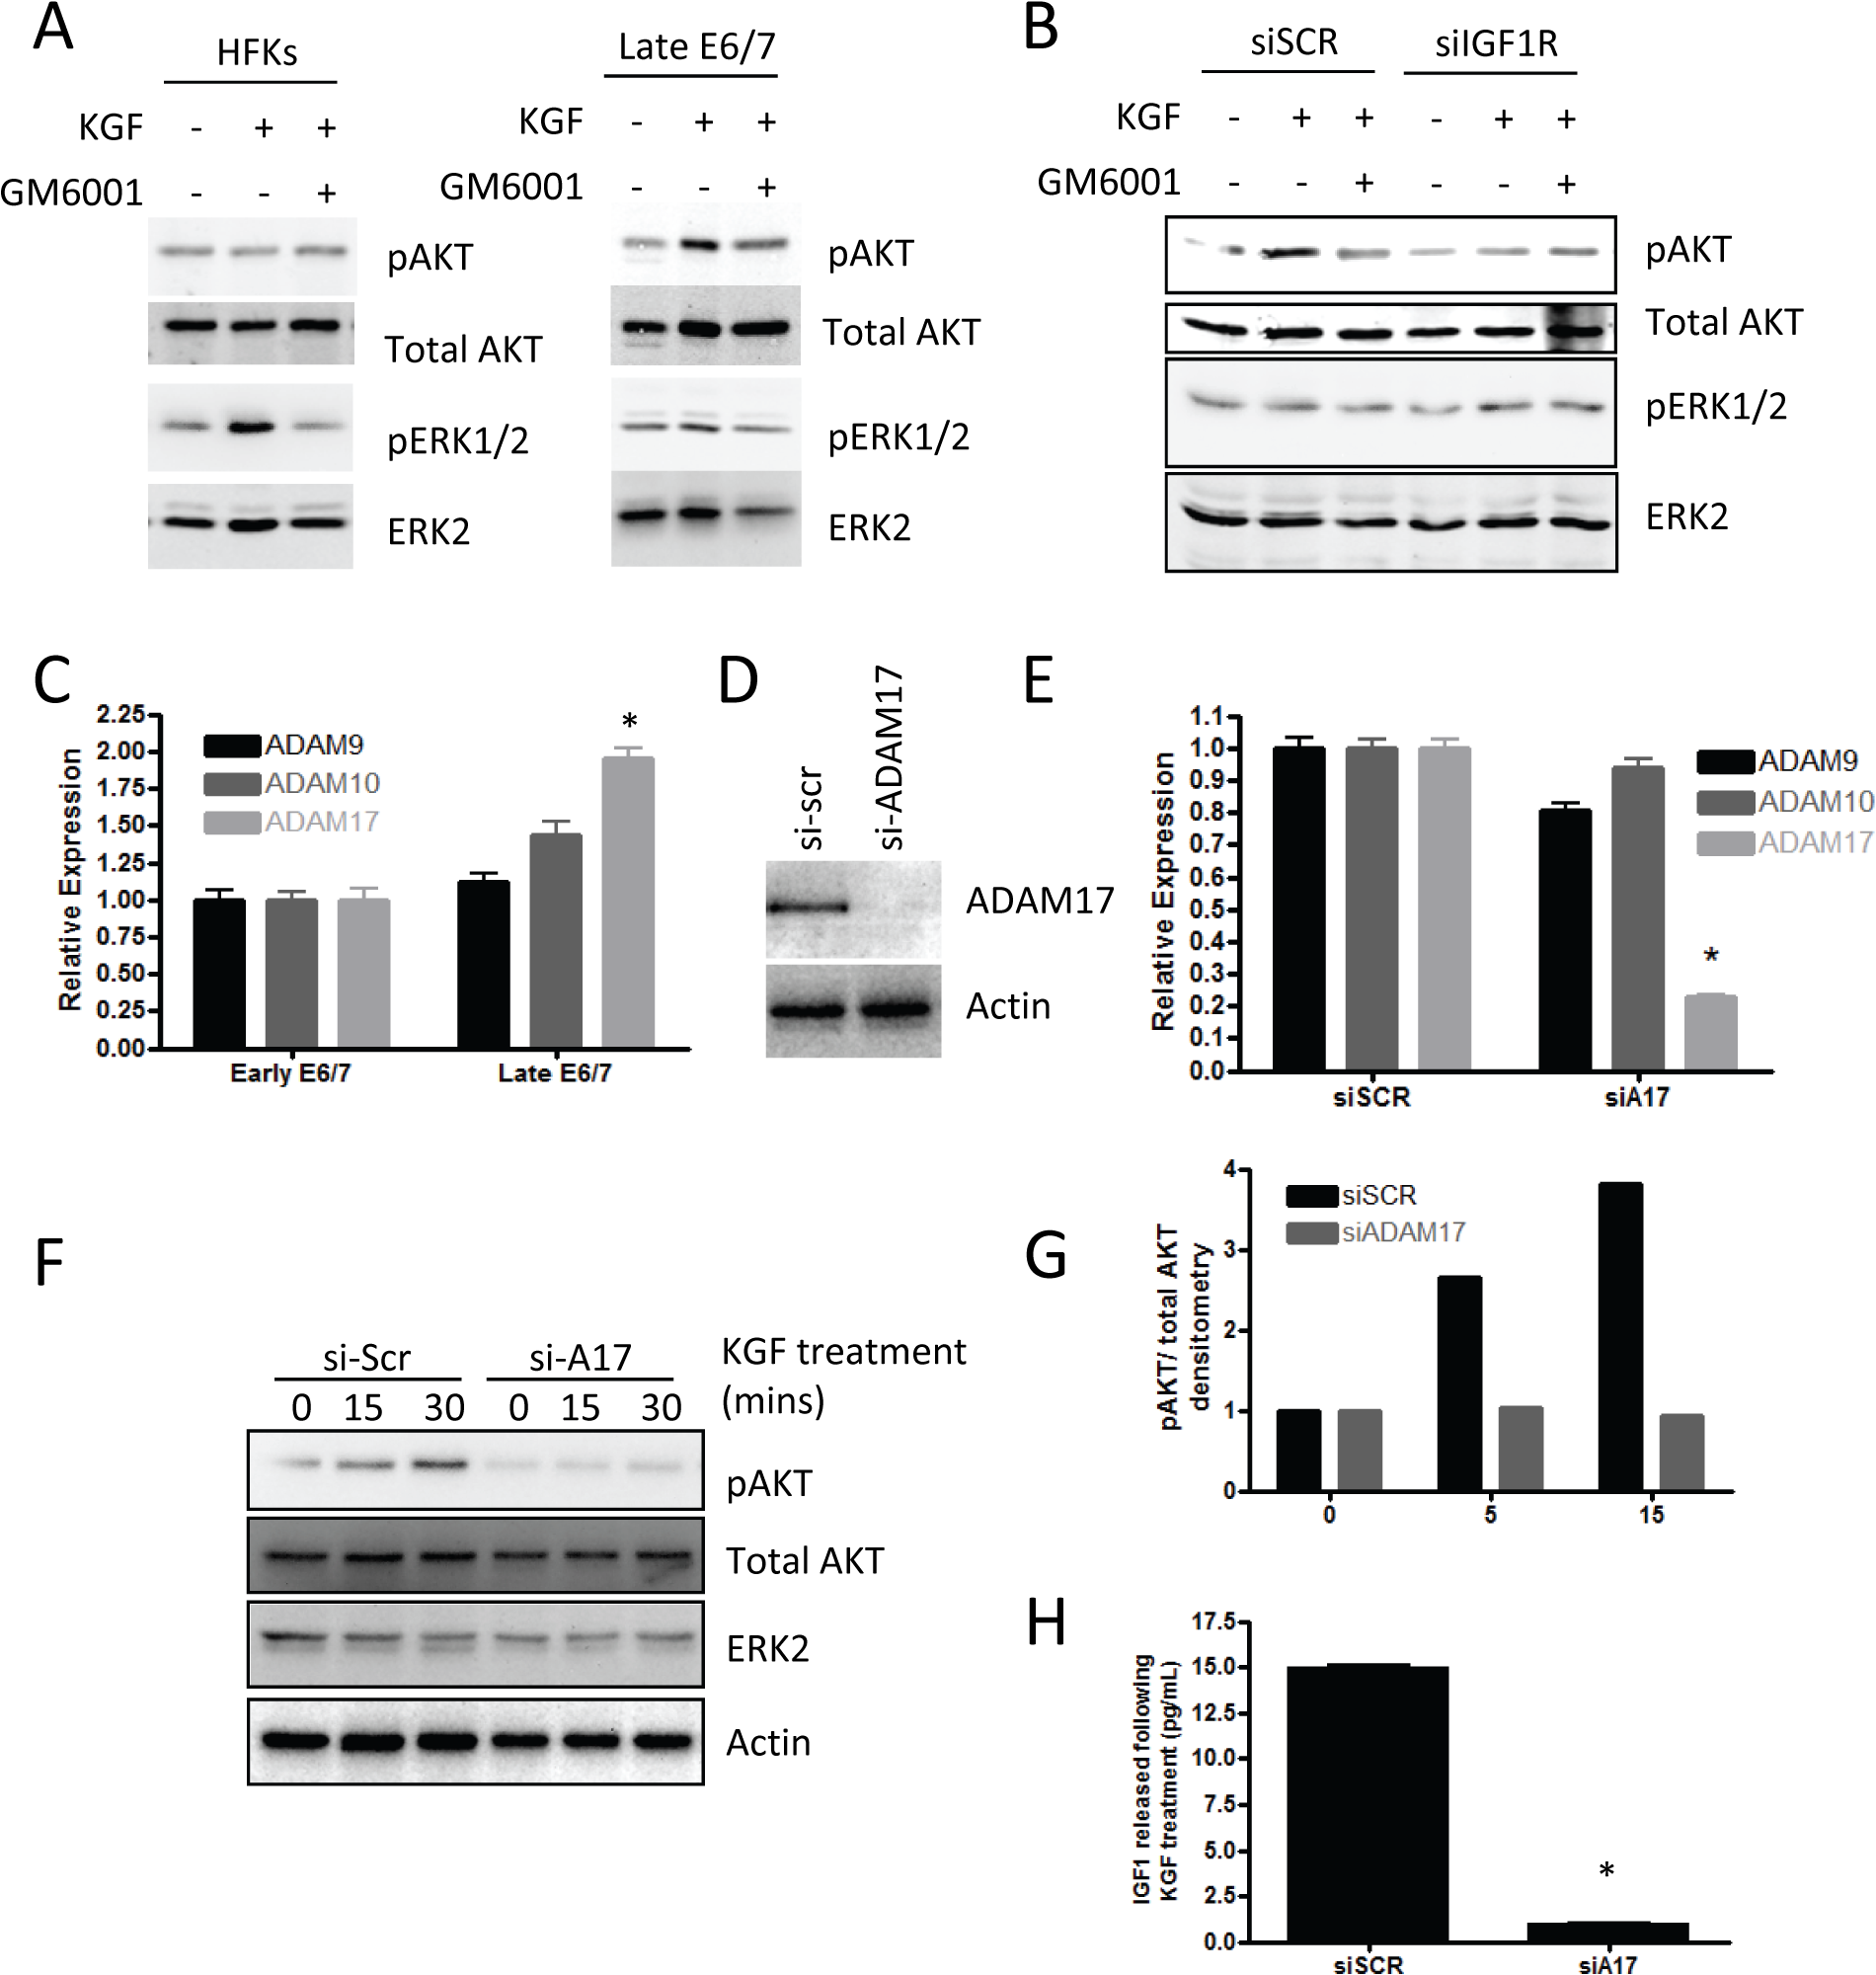 Signalling mediated by KGF requires IGF1R.